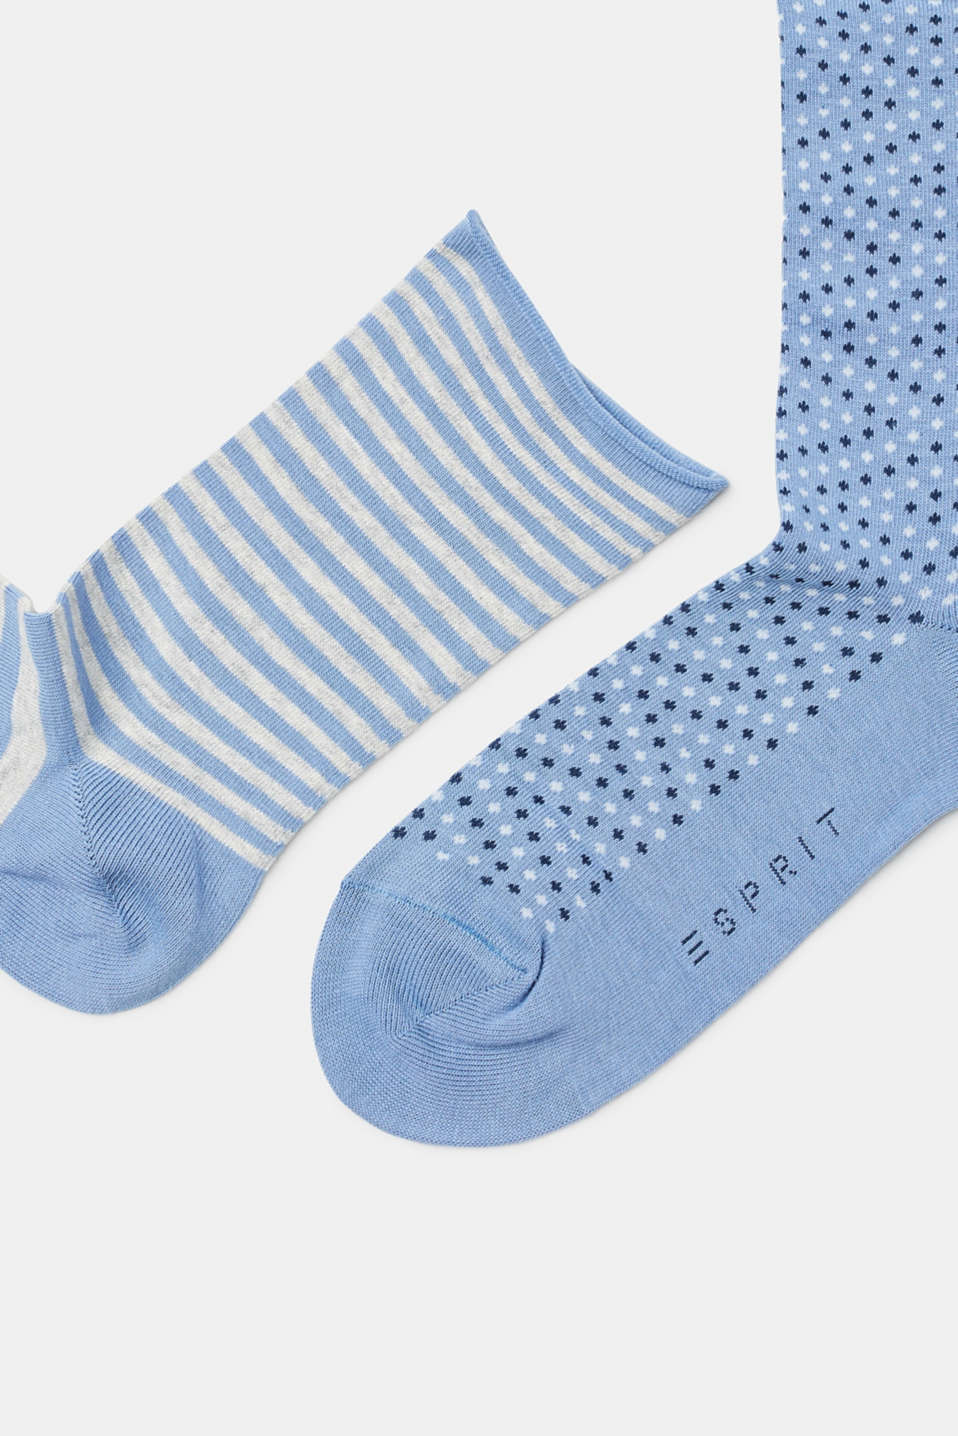 3 pack fine socks, plain and patterned